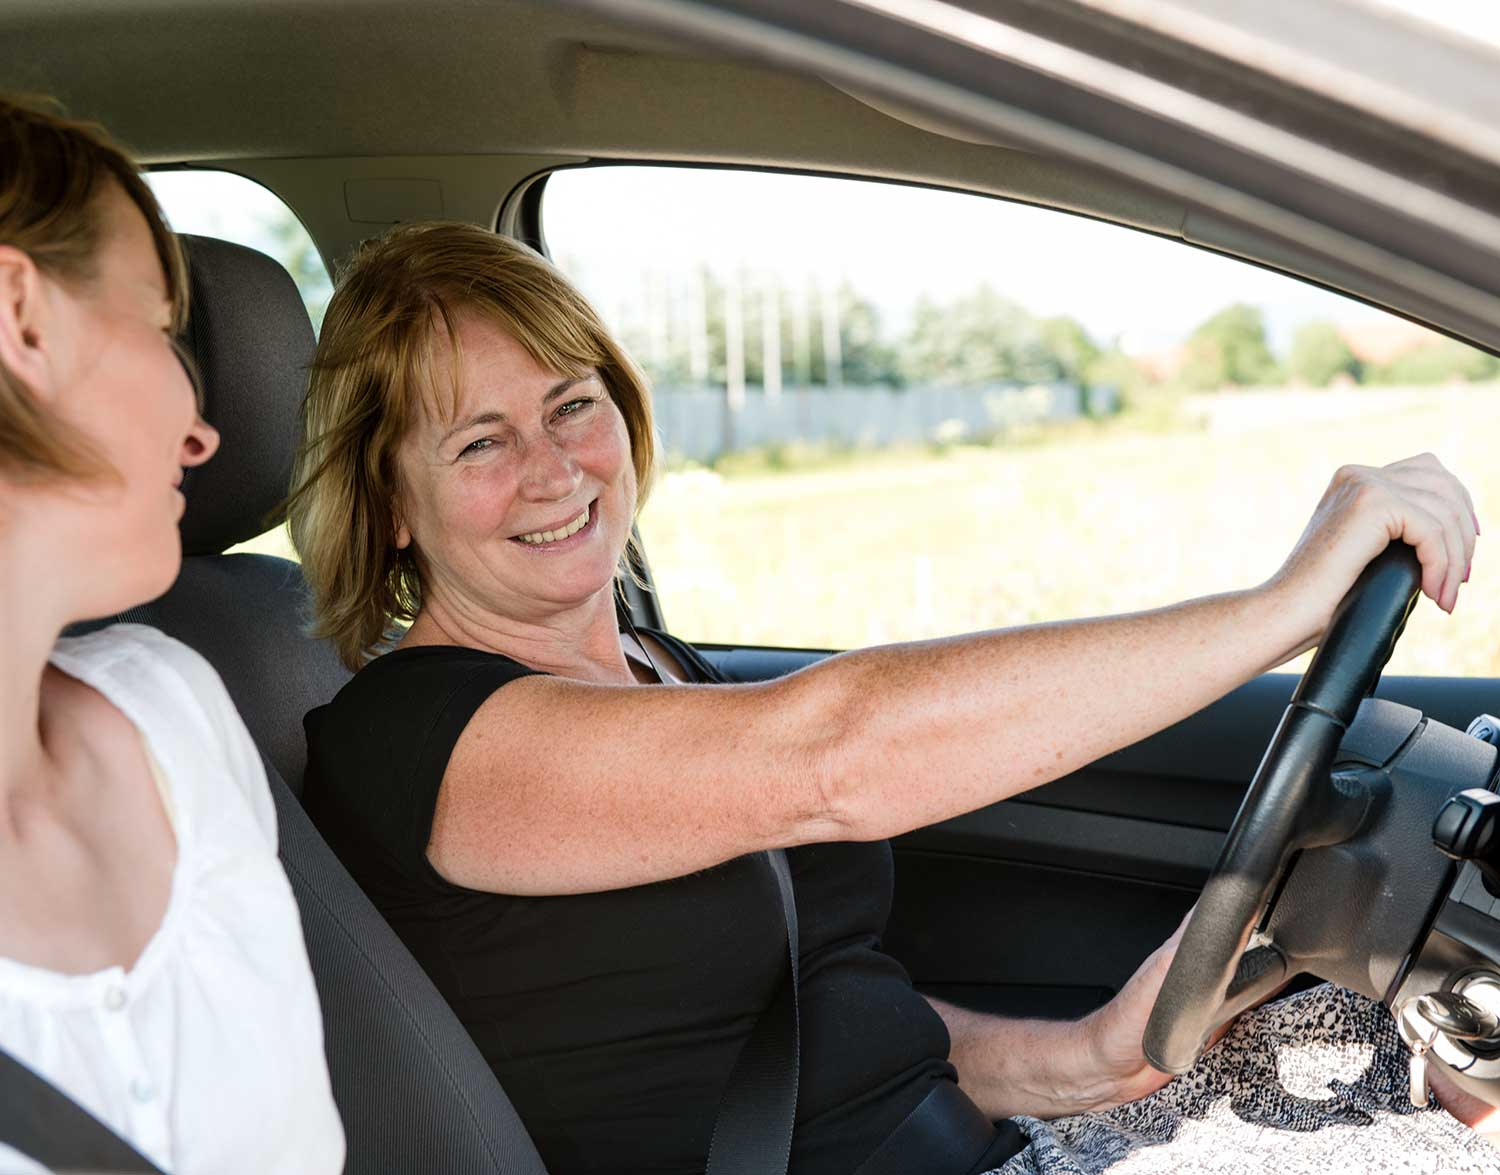 Smiling lady driving